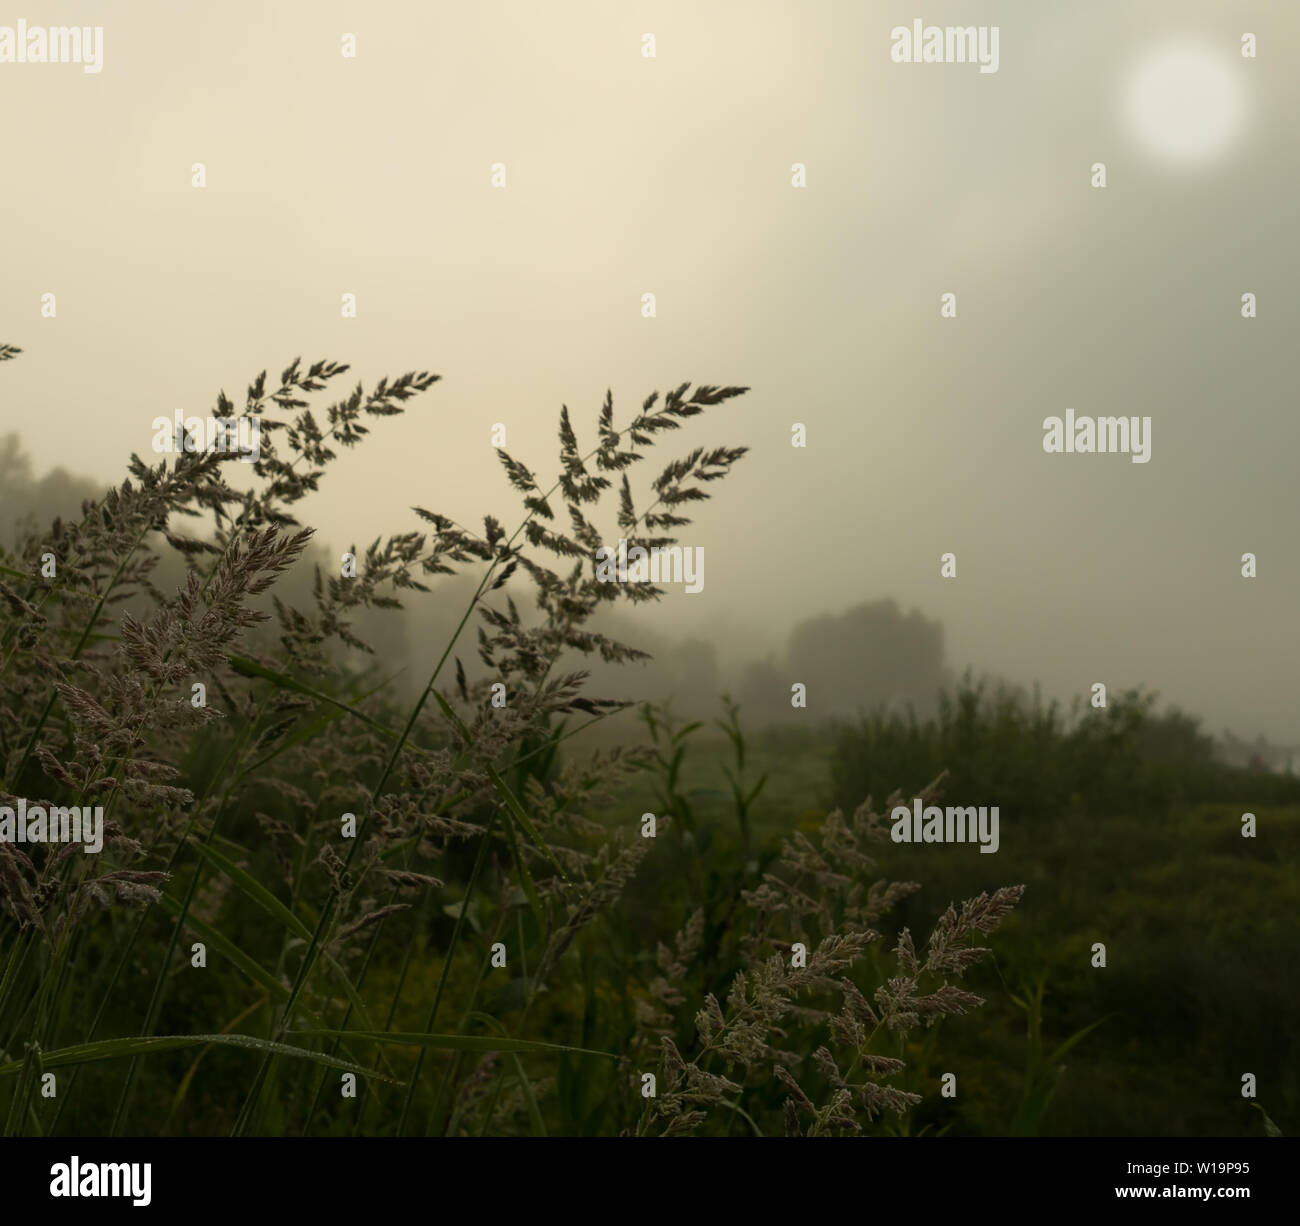 grass on a foggy morning - Stock Image